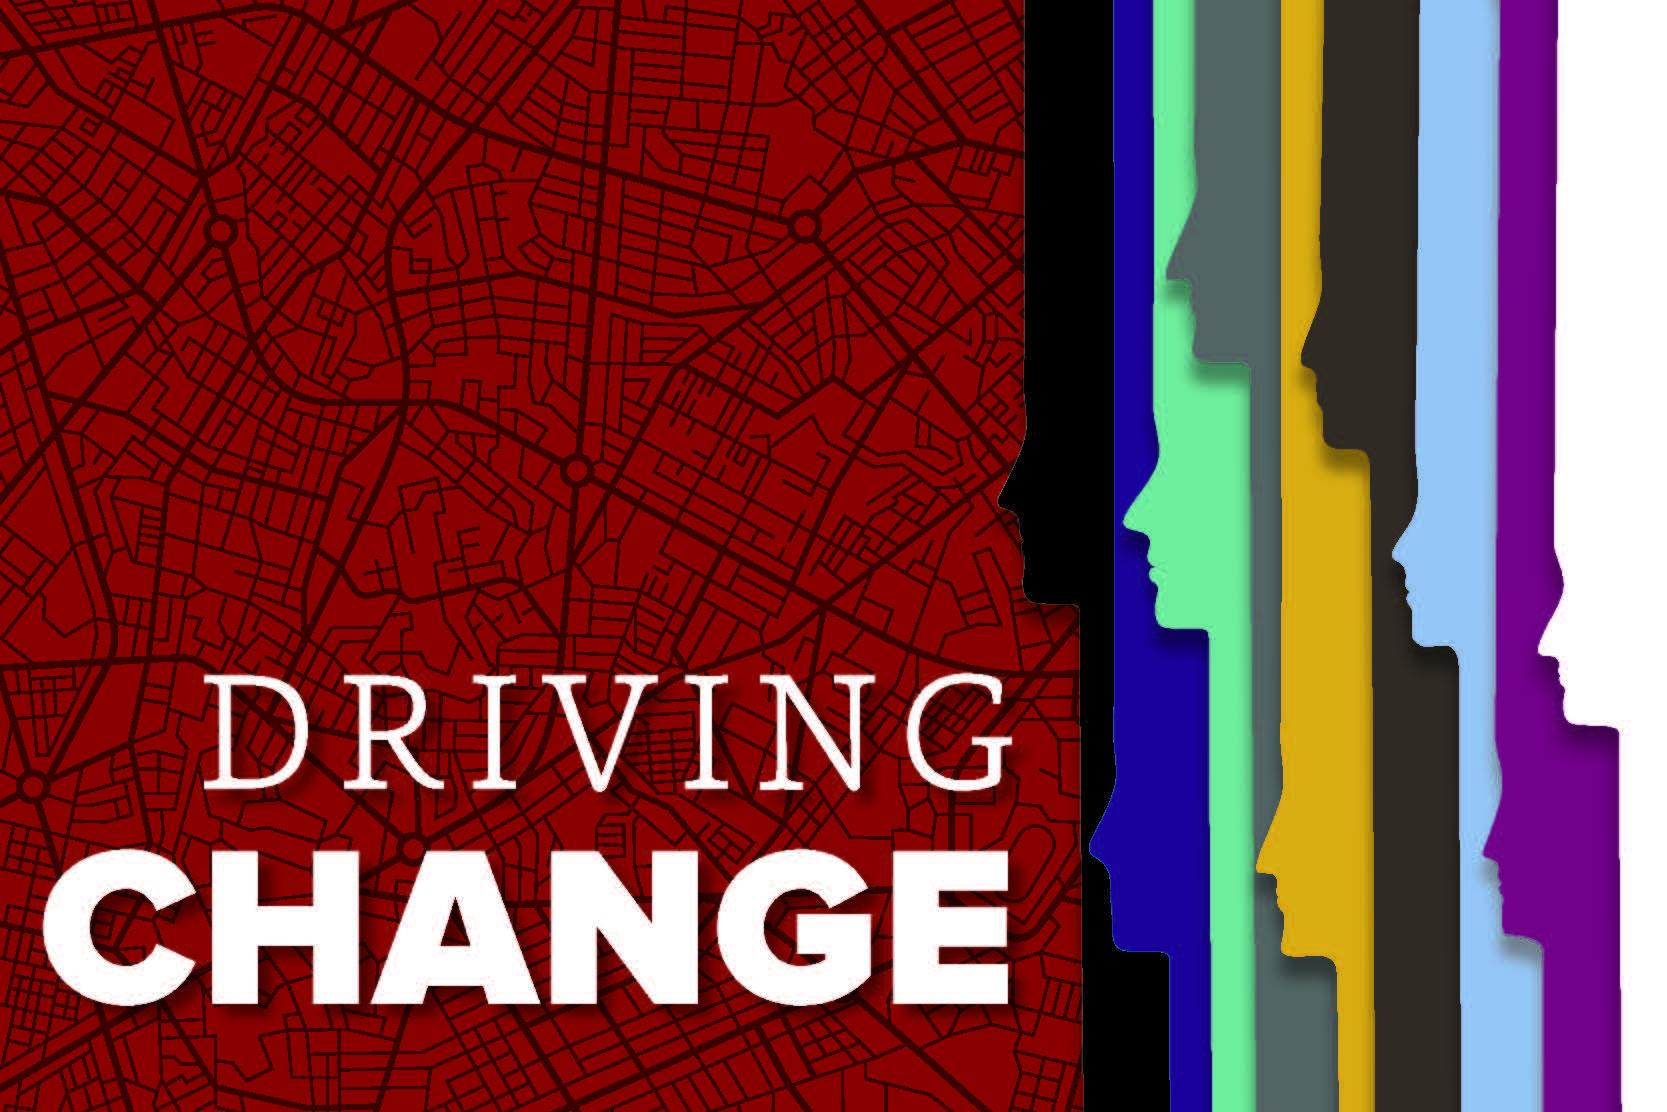 Driving Change with colorful faces in profile